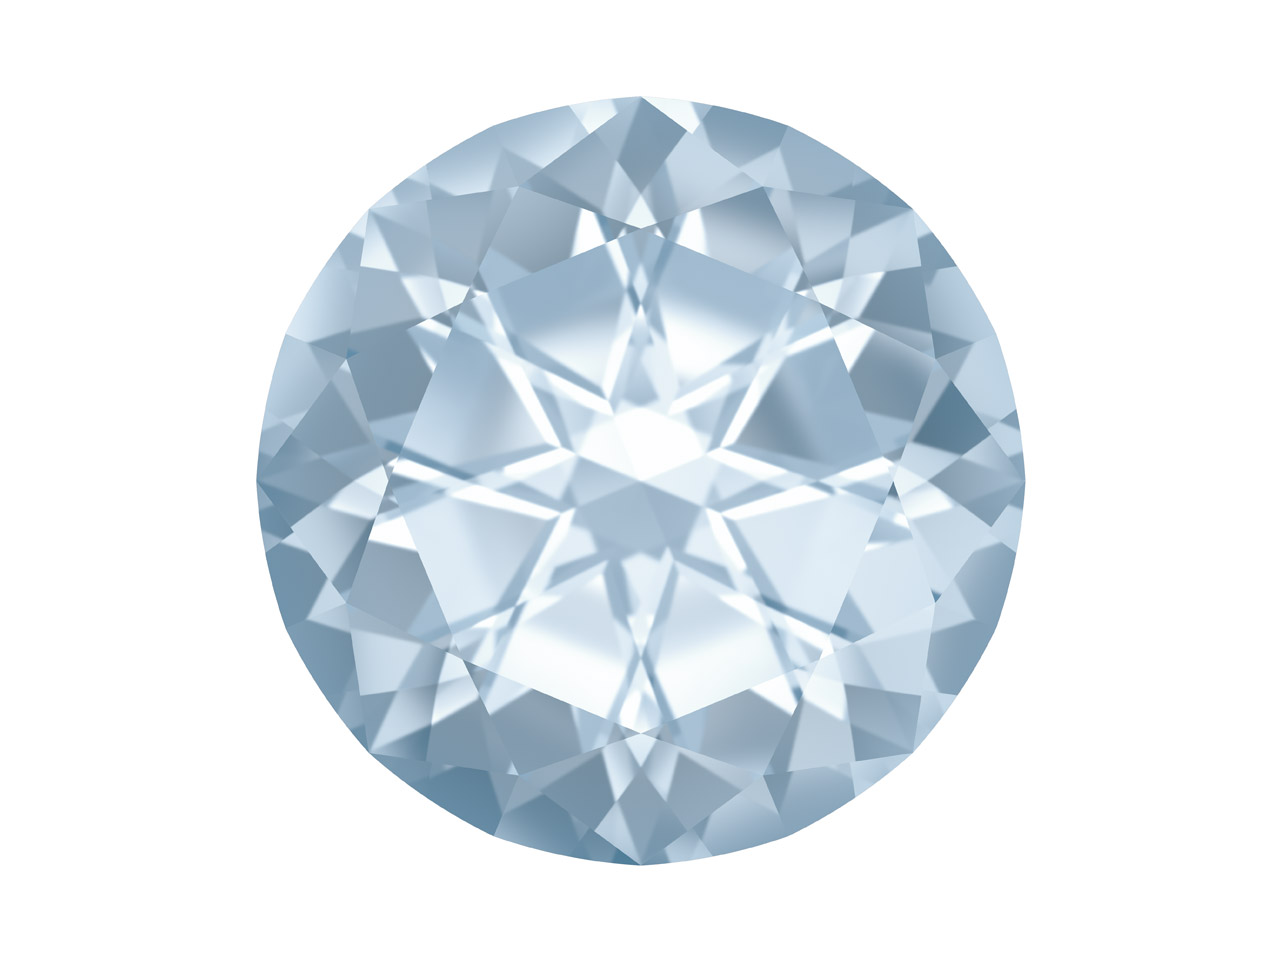 Swarovski Gemstones Genuine Topaz  Round Natural Brilliance Cut 10mm  White